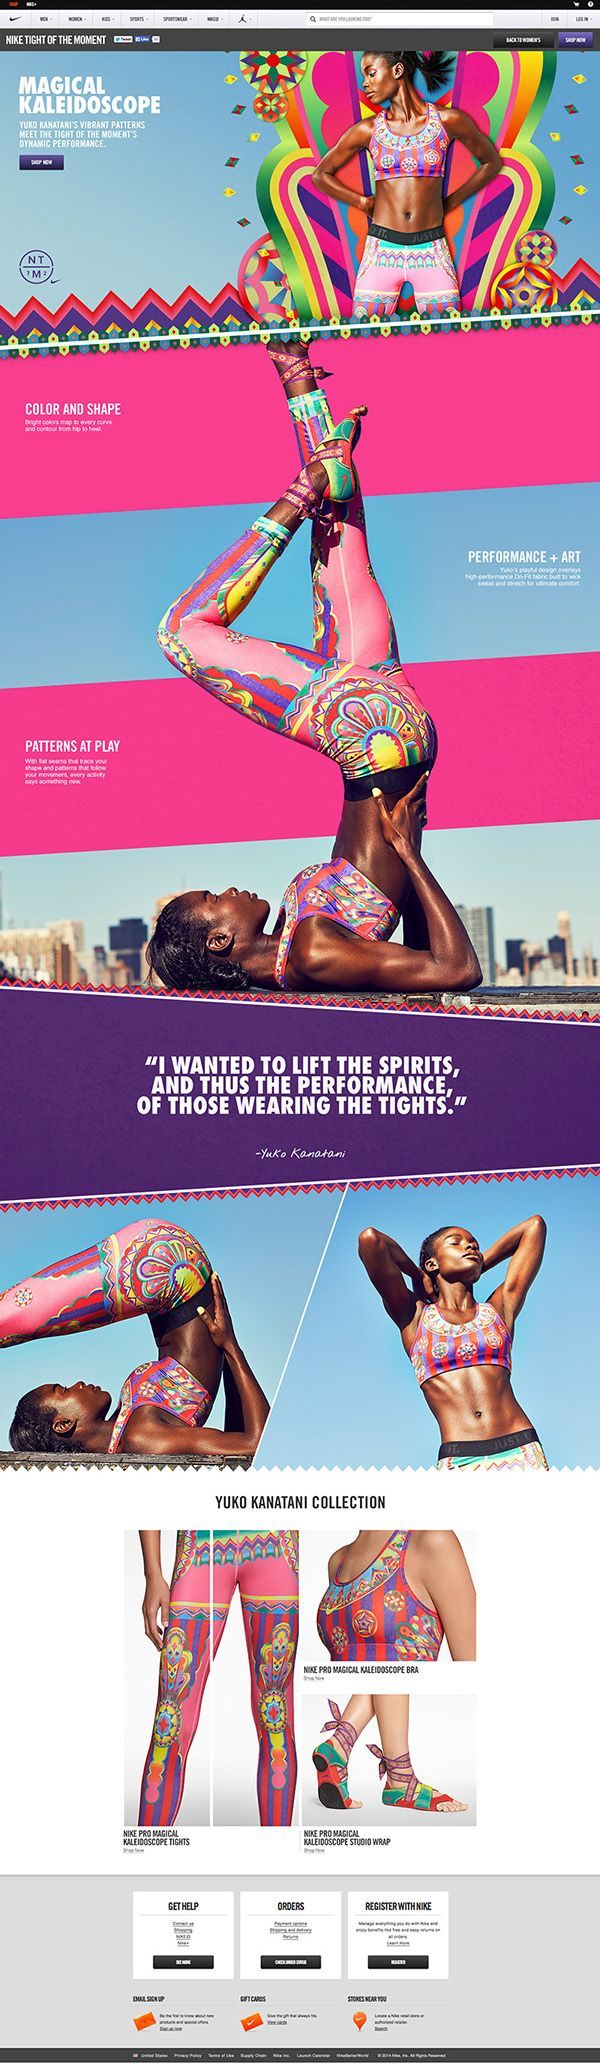 Nike: Tights of the Moment by Mariola Bruszewska, via Behance #webdesign #fresh